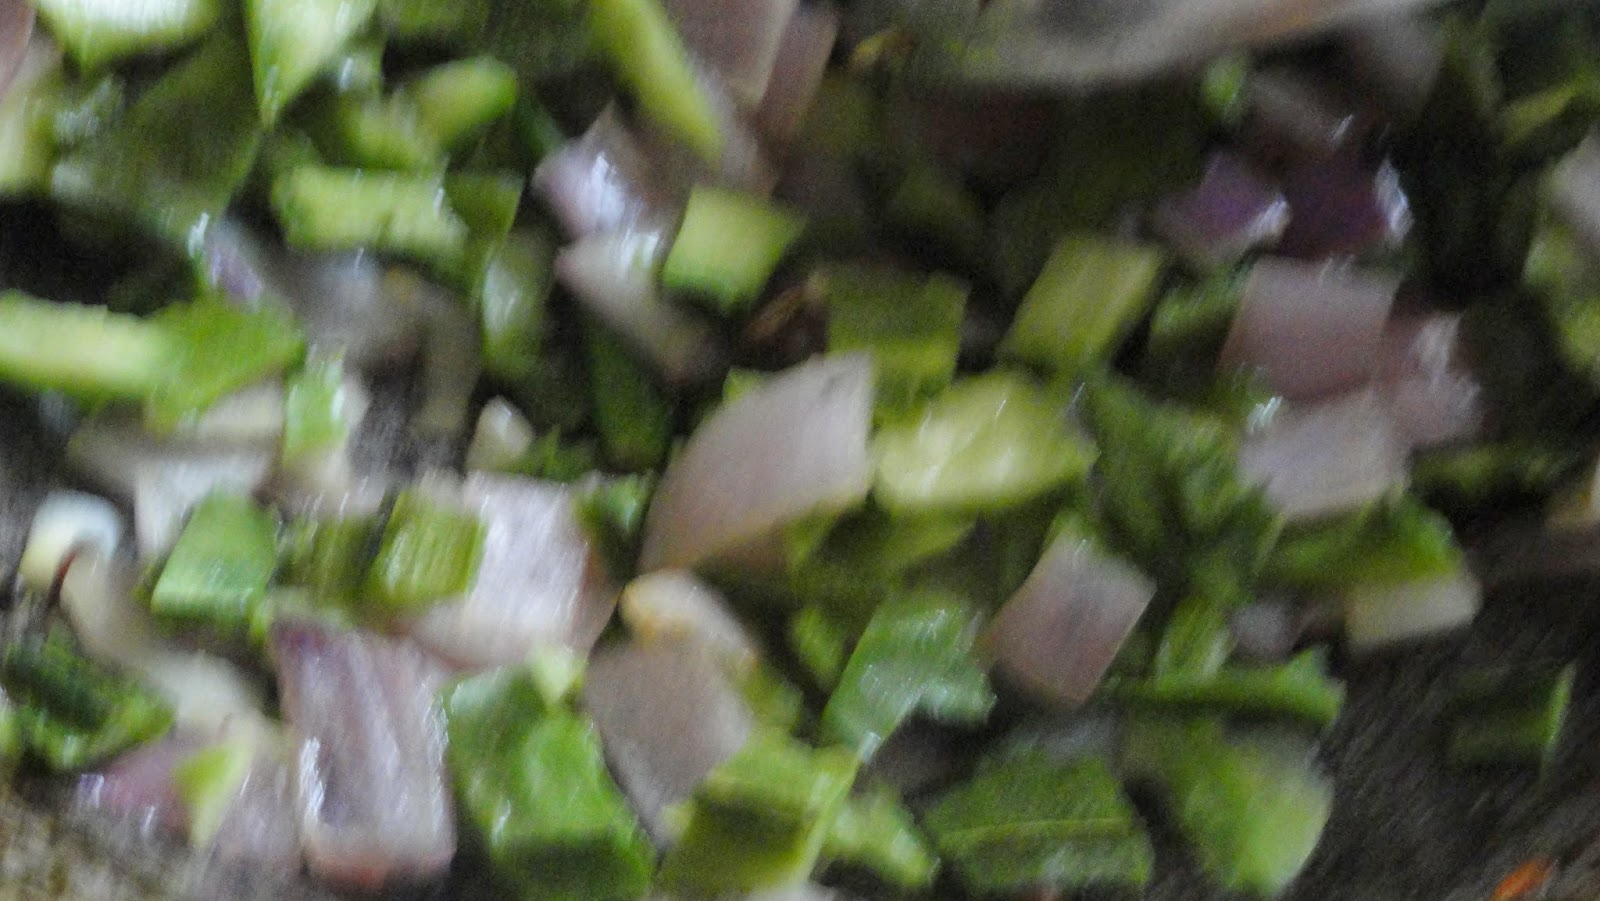 add ridge gourd peel and saute it